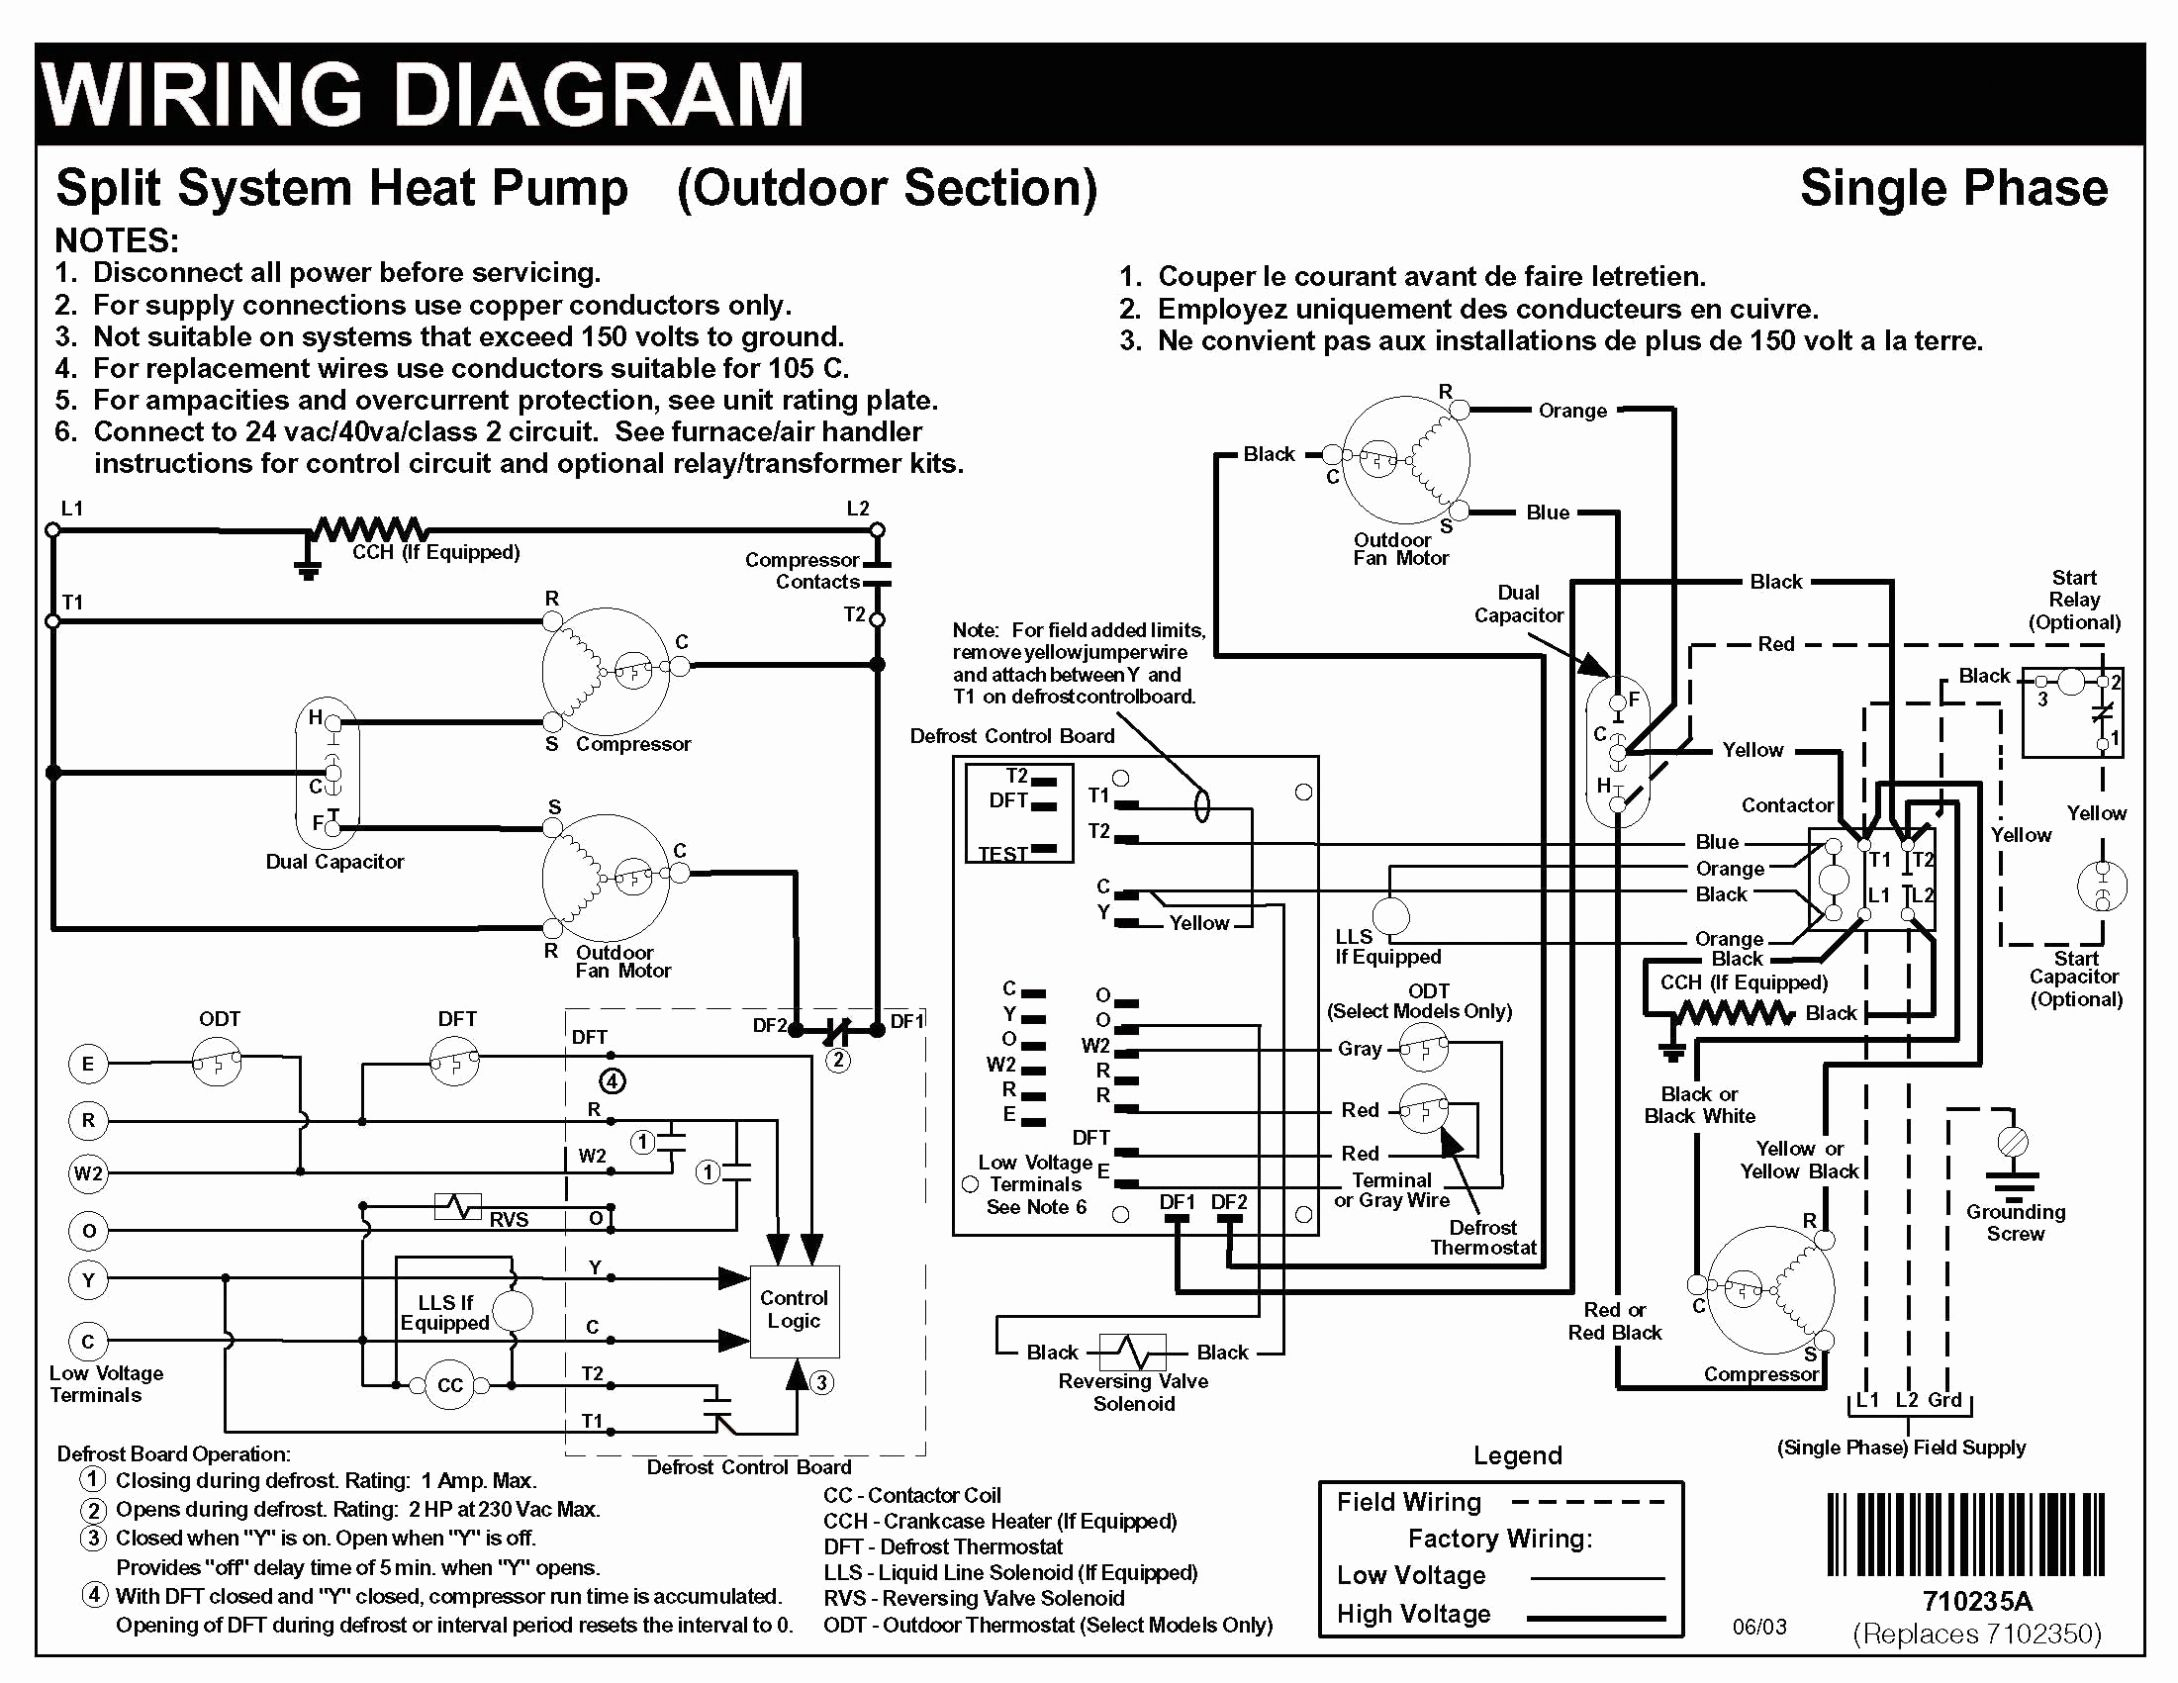 60 Best Of Wiring Diagram For Nest Thermostat Images | Wsmce - Nest Heat Pump Wiring Diagram